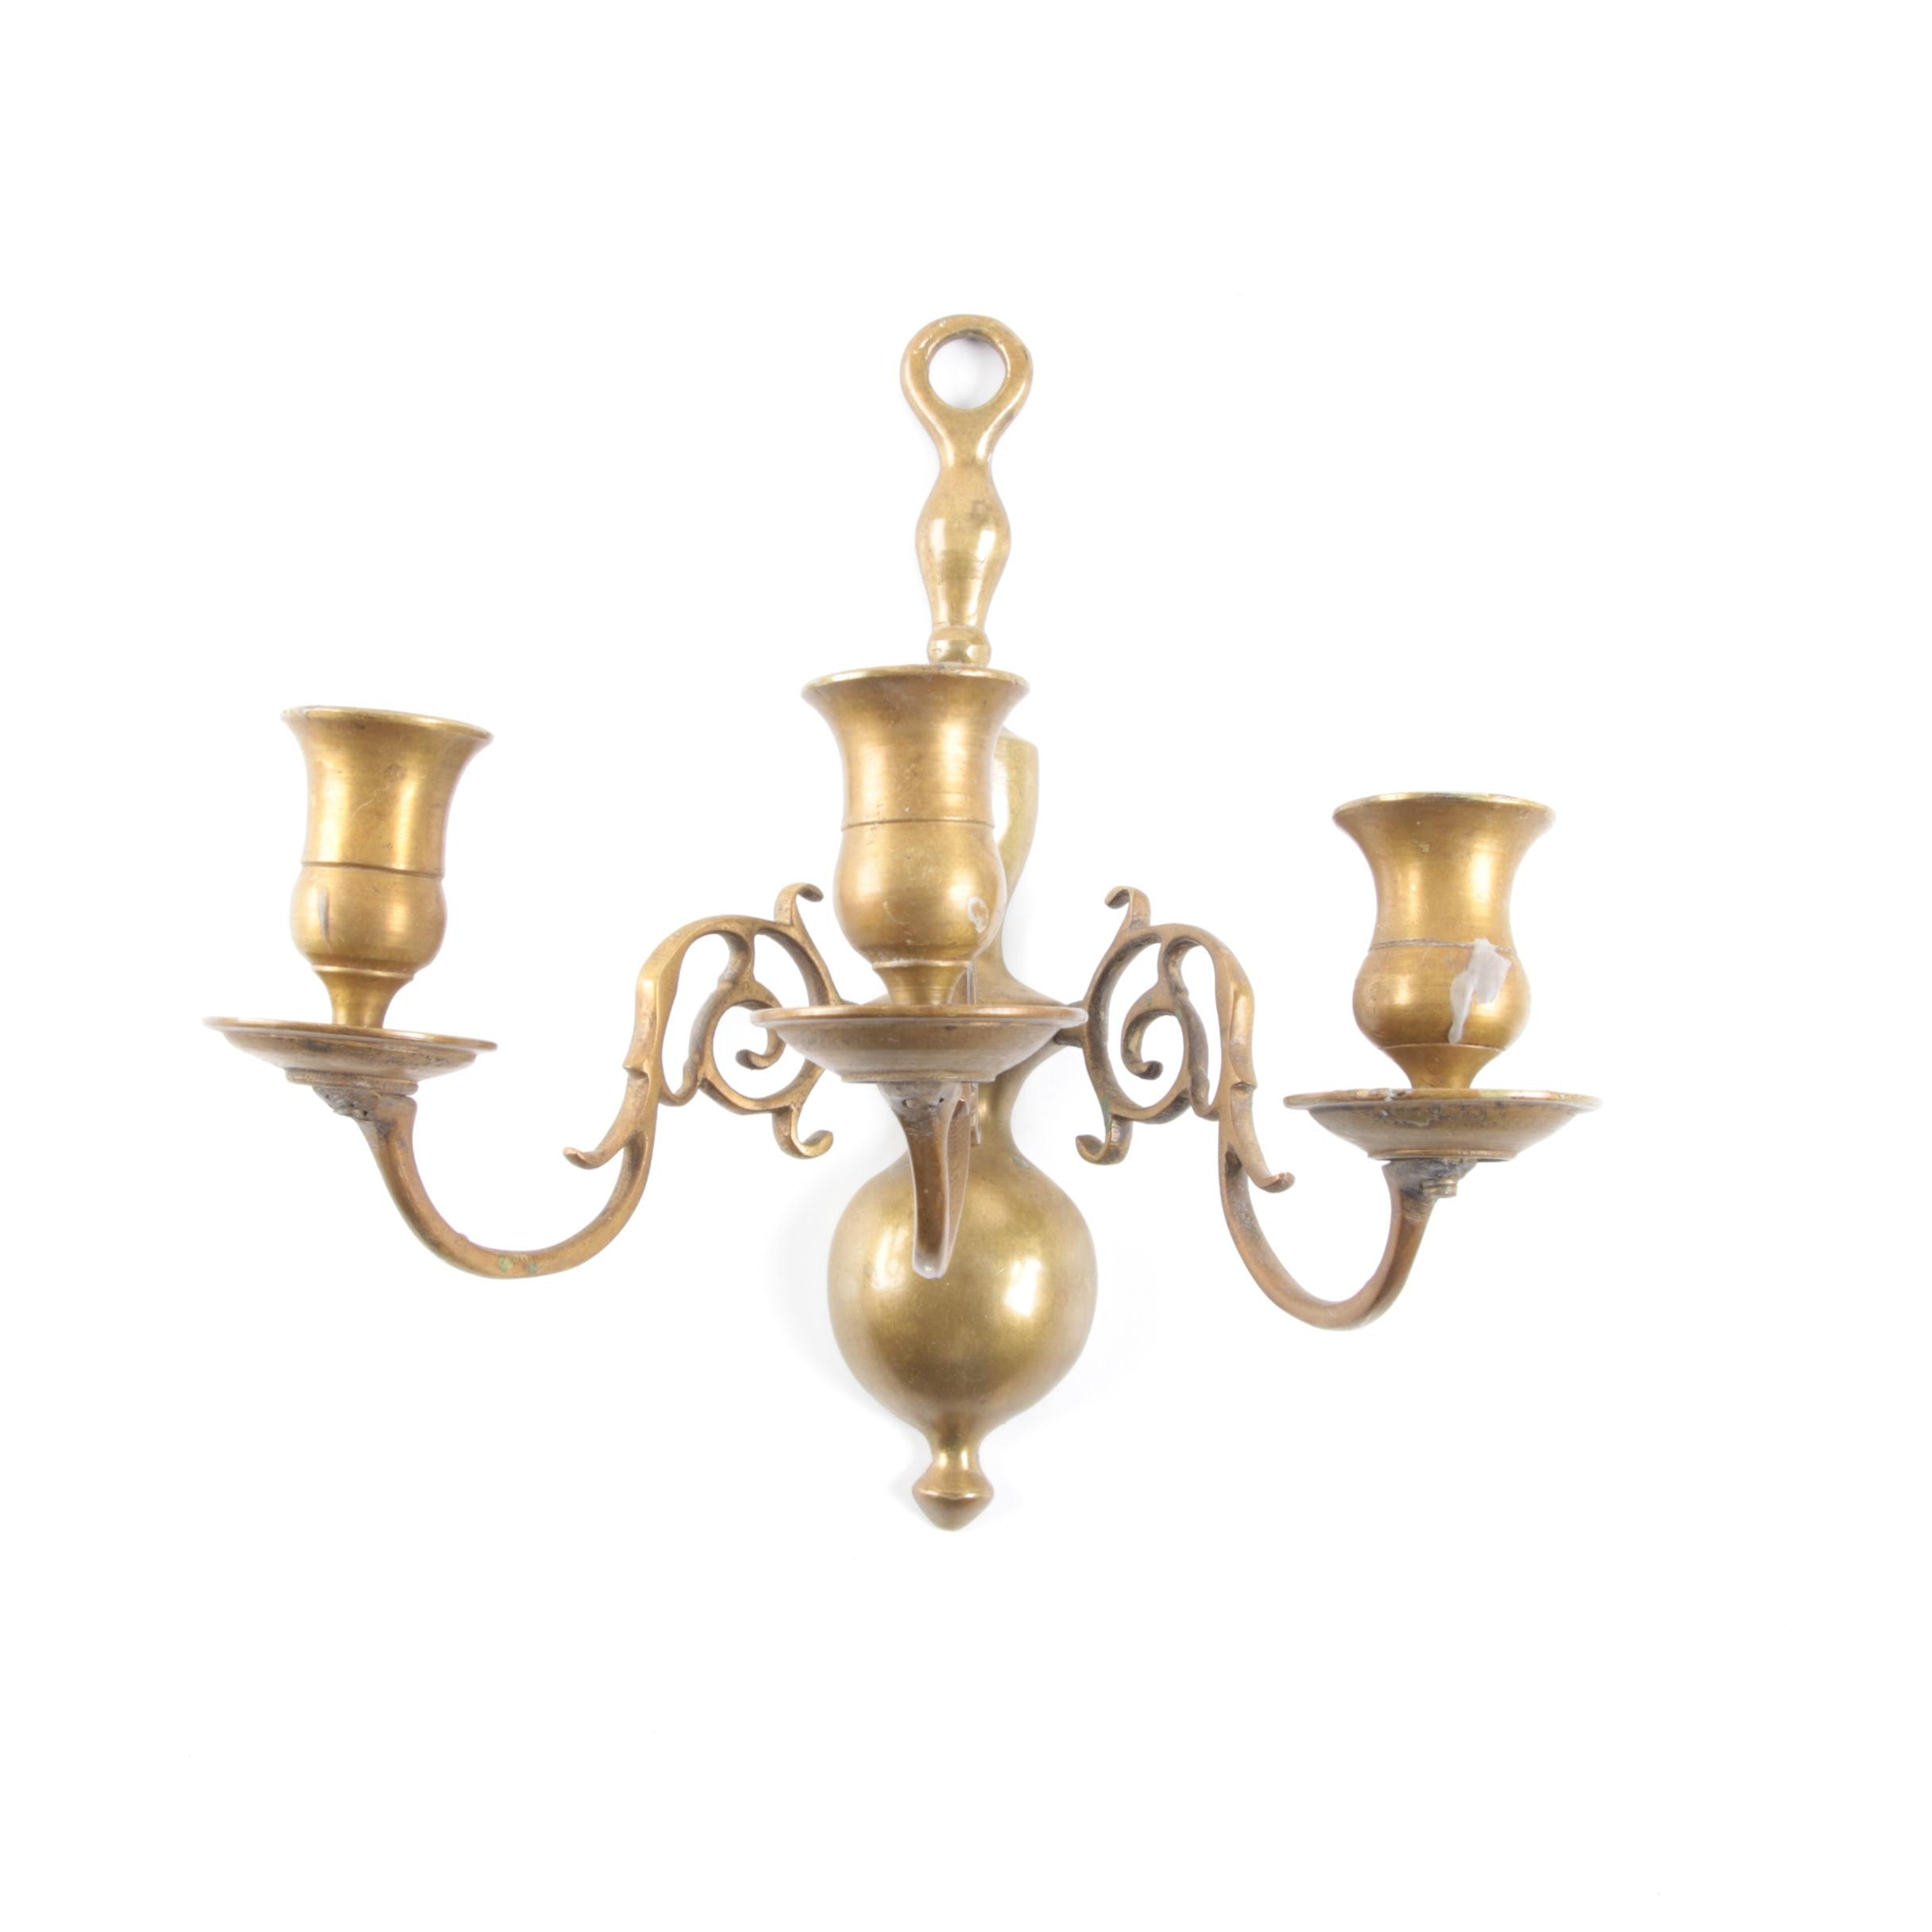 Three Light Brass Wall Sconce